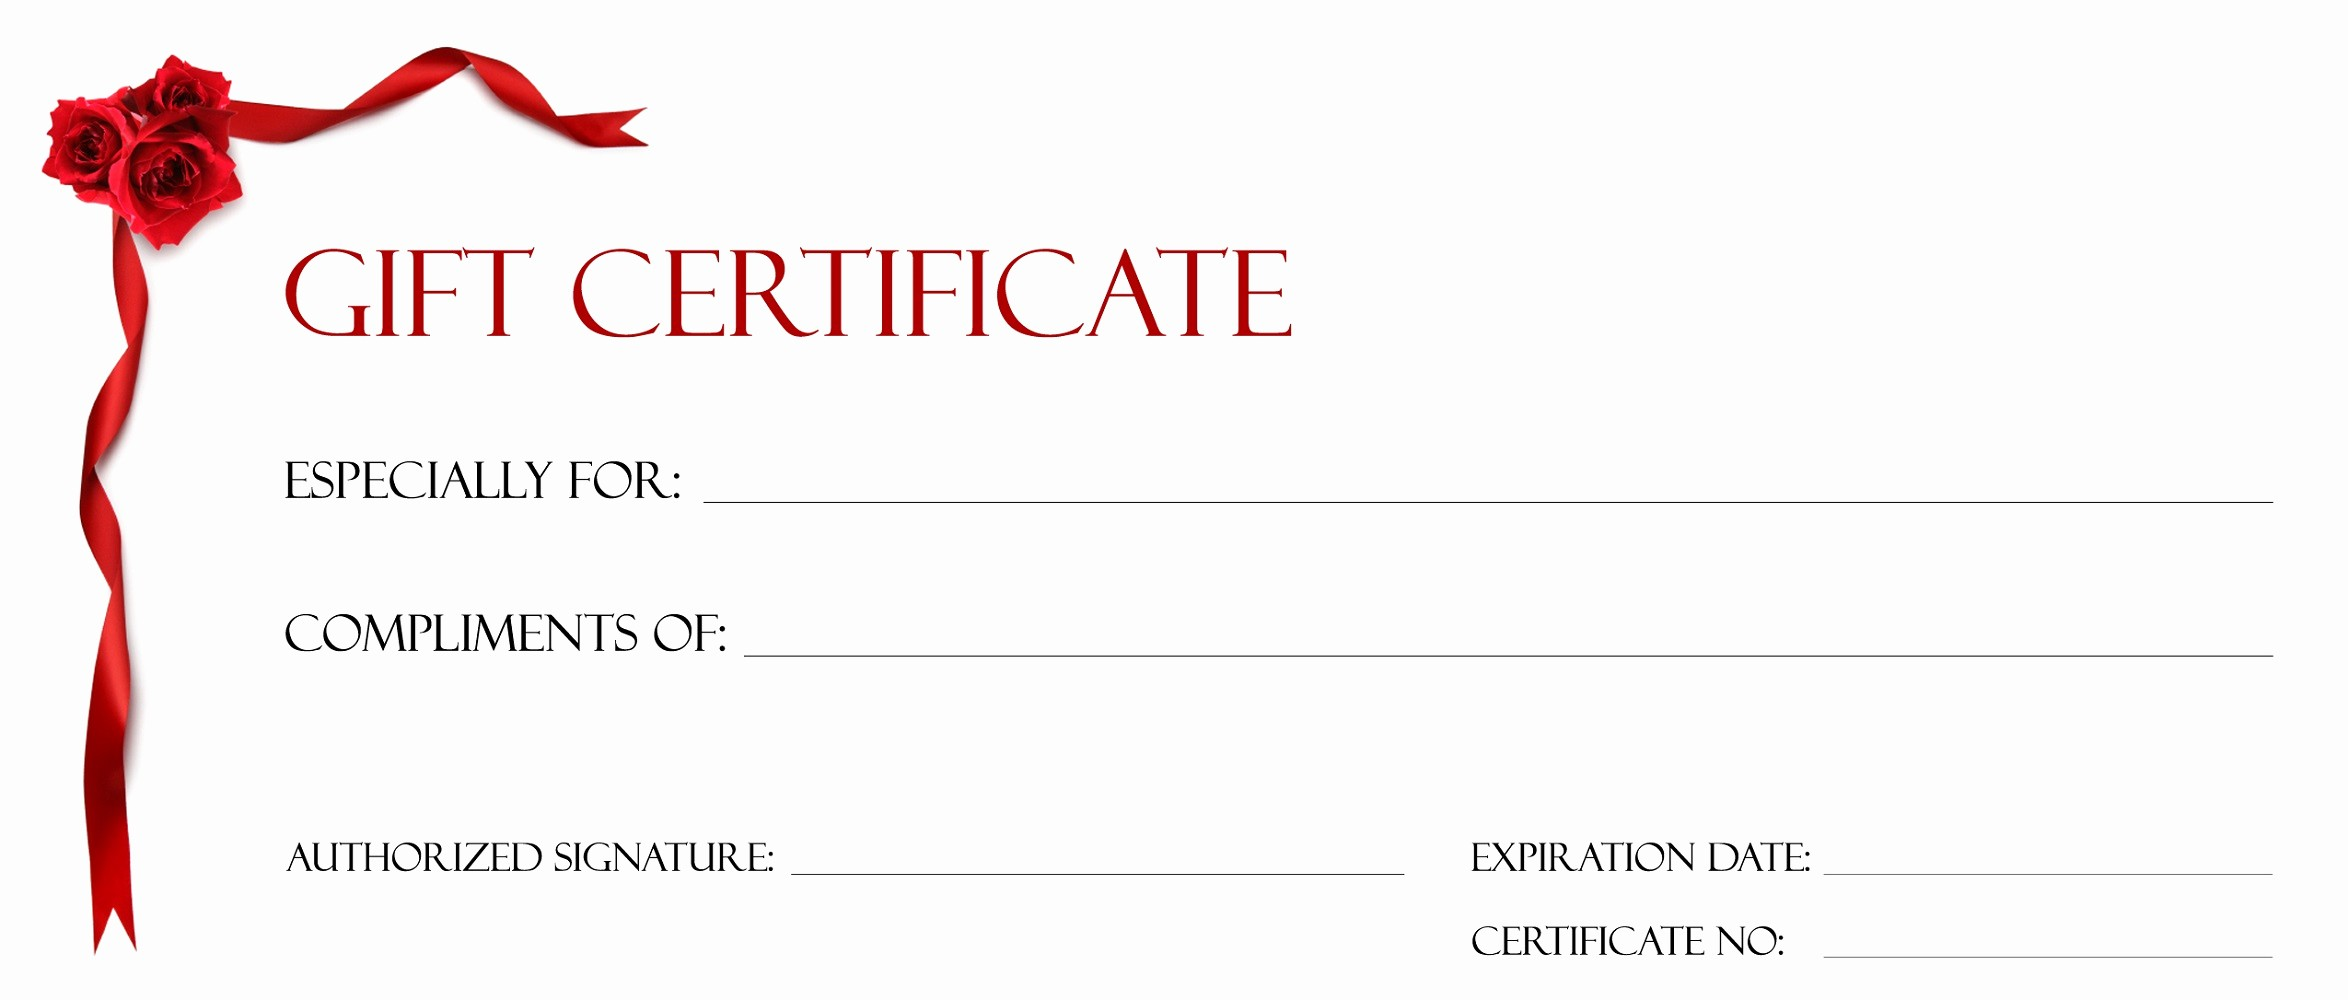 Making A Gift Certificate Free Fresh Gift Certificate Templates to Print